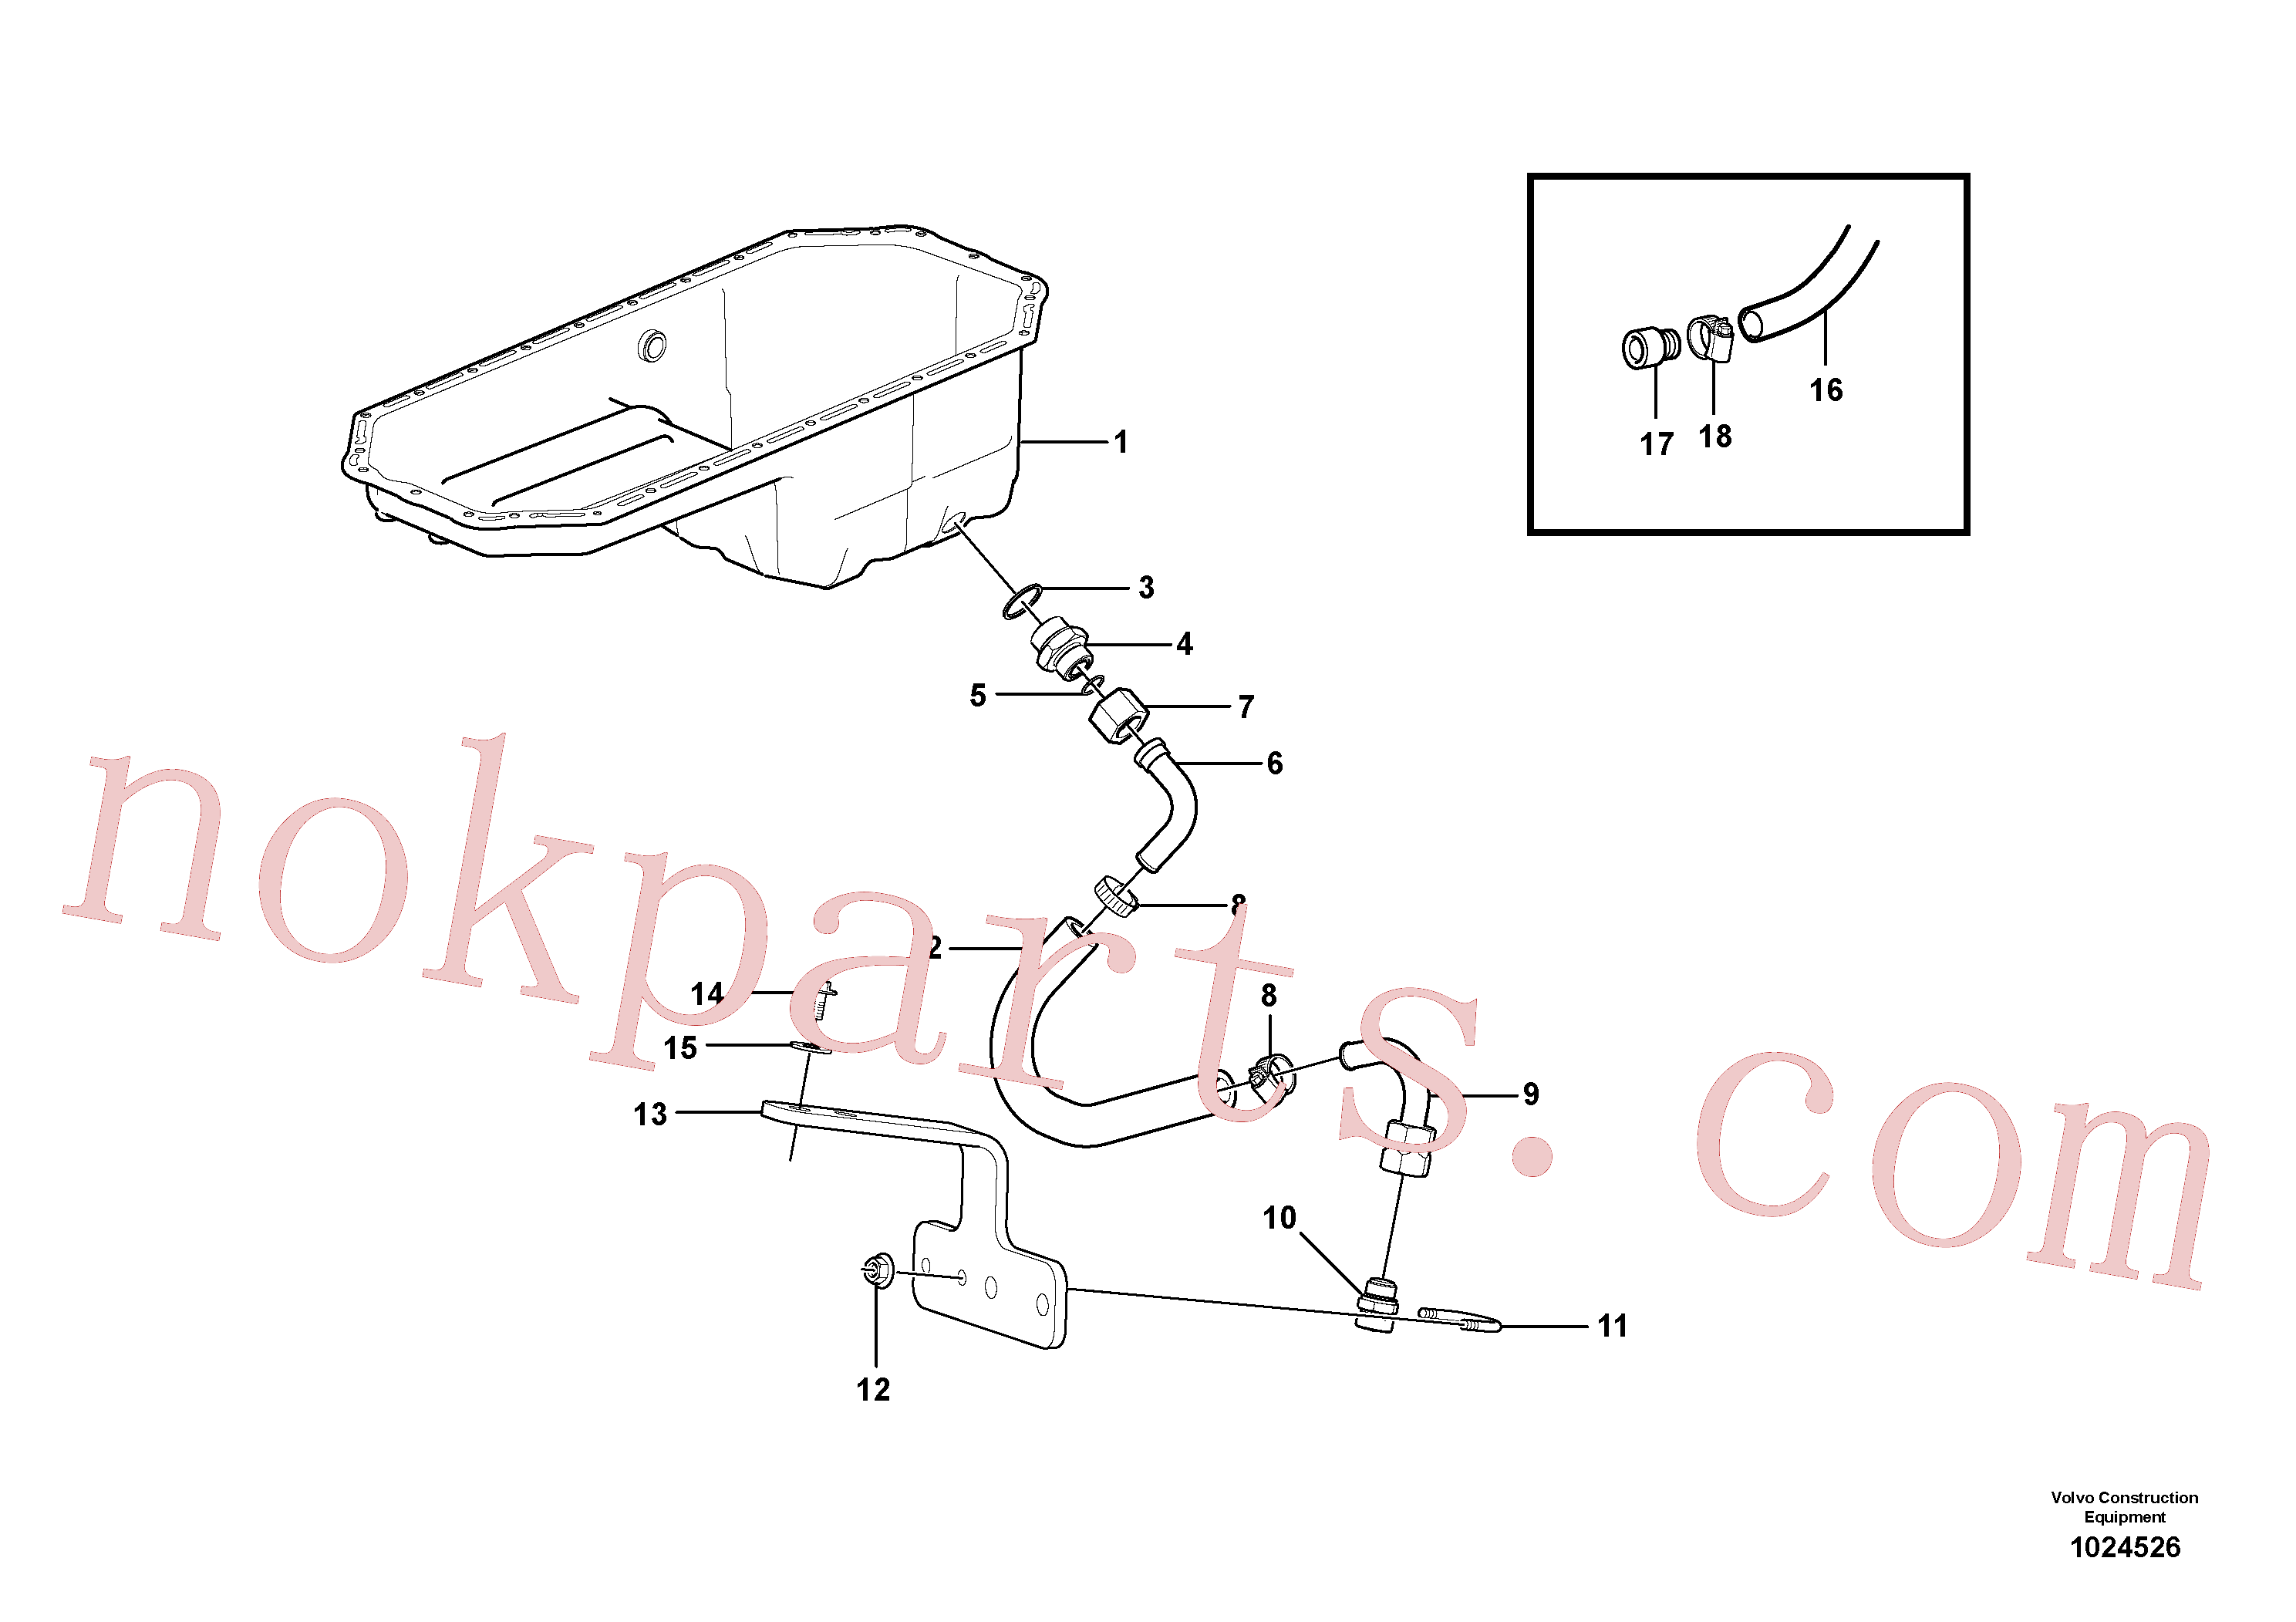 SA9426-20090 for Volvo Draining of oil sump(1024526 assembly)